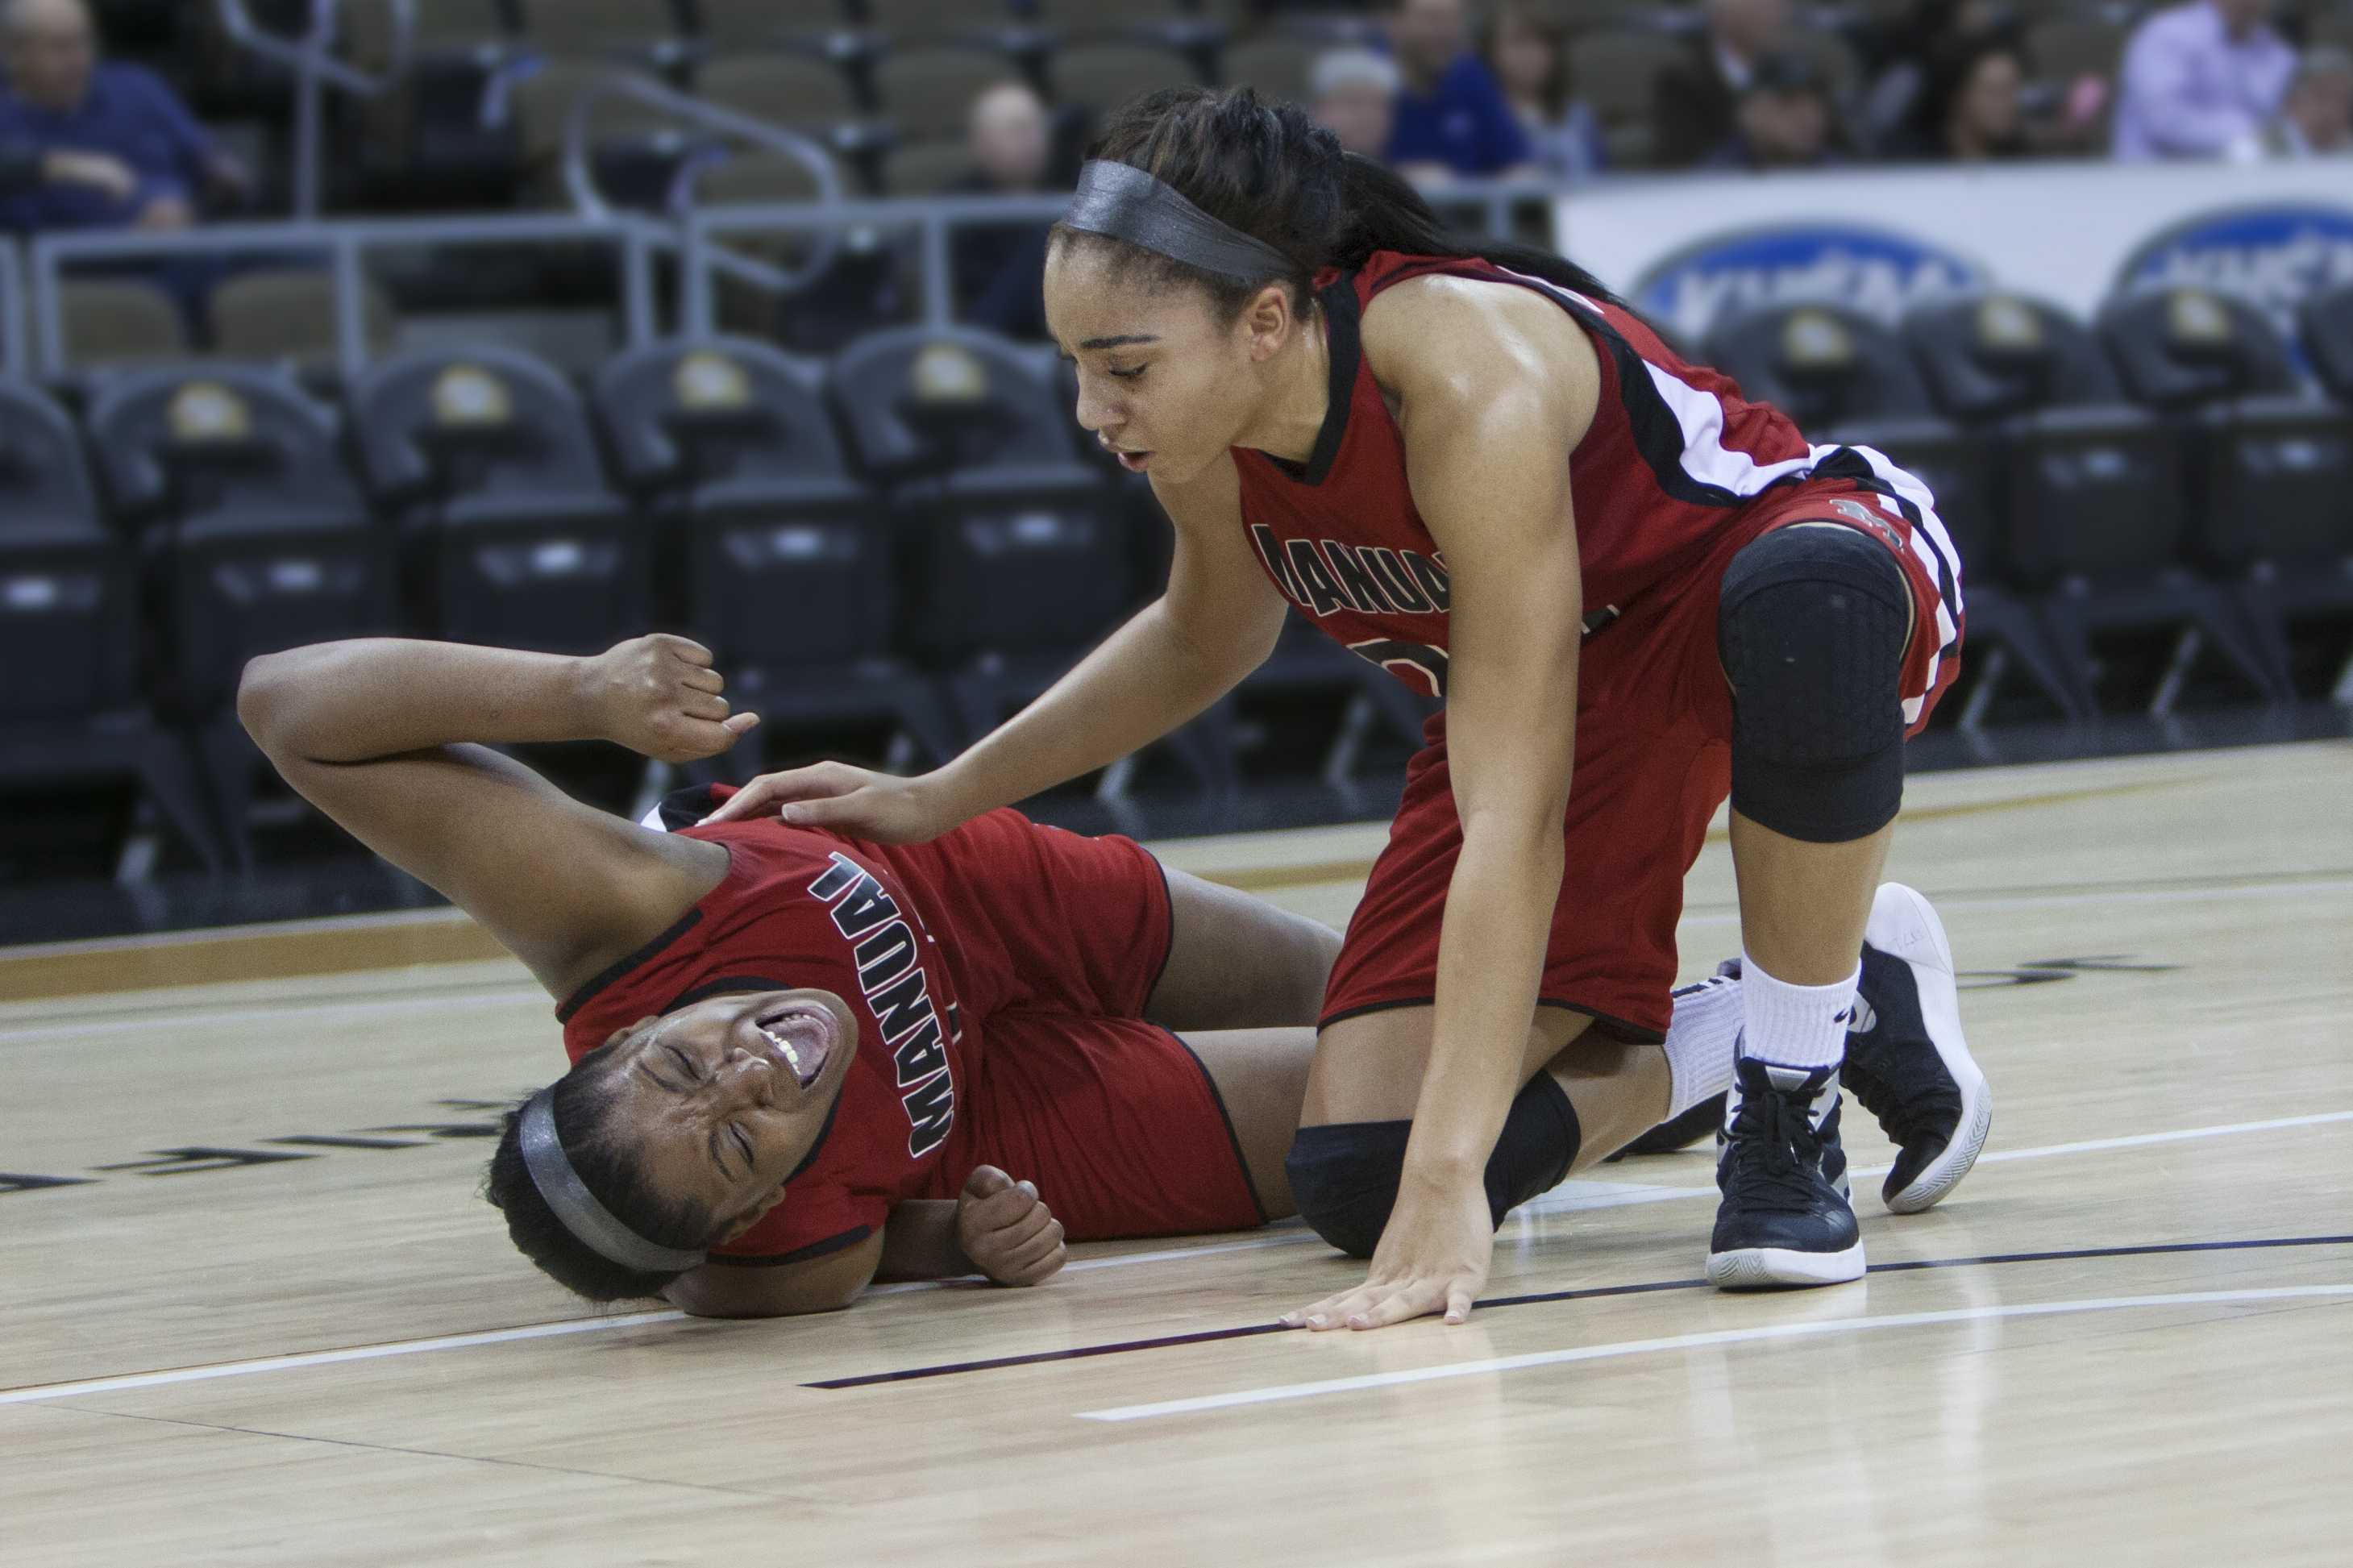 Manual center Krys McCune after injuring her knee at the 2:43 mark of the first quarter. Photo by Piper Cassetto